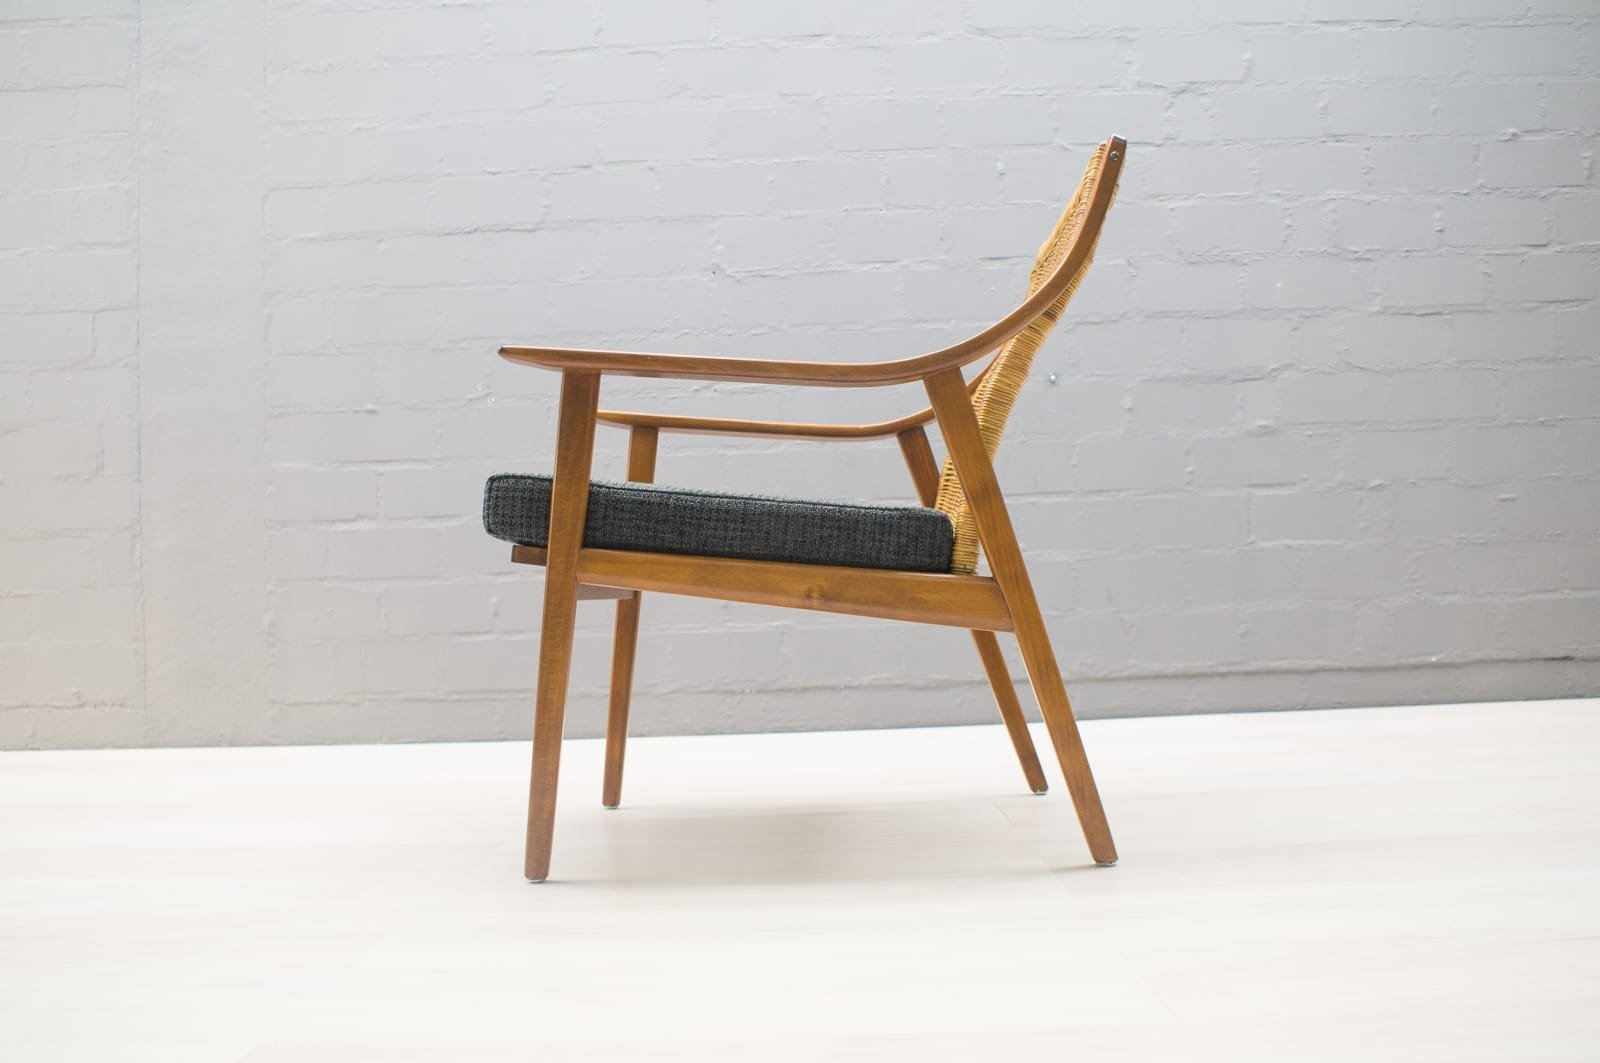 Mid century scandinavian easy chair 1950s for sale at pamono - Scandinavian chair ...